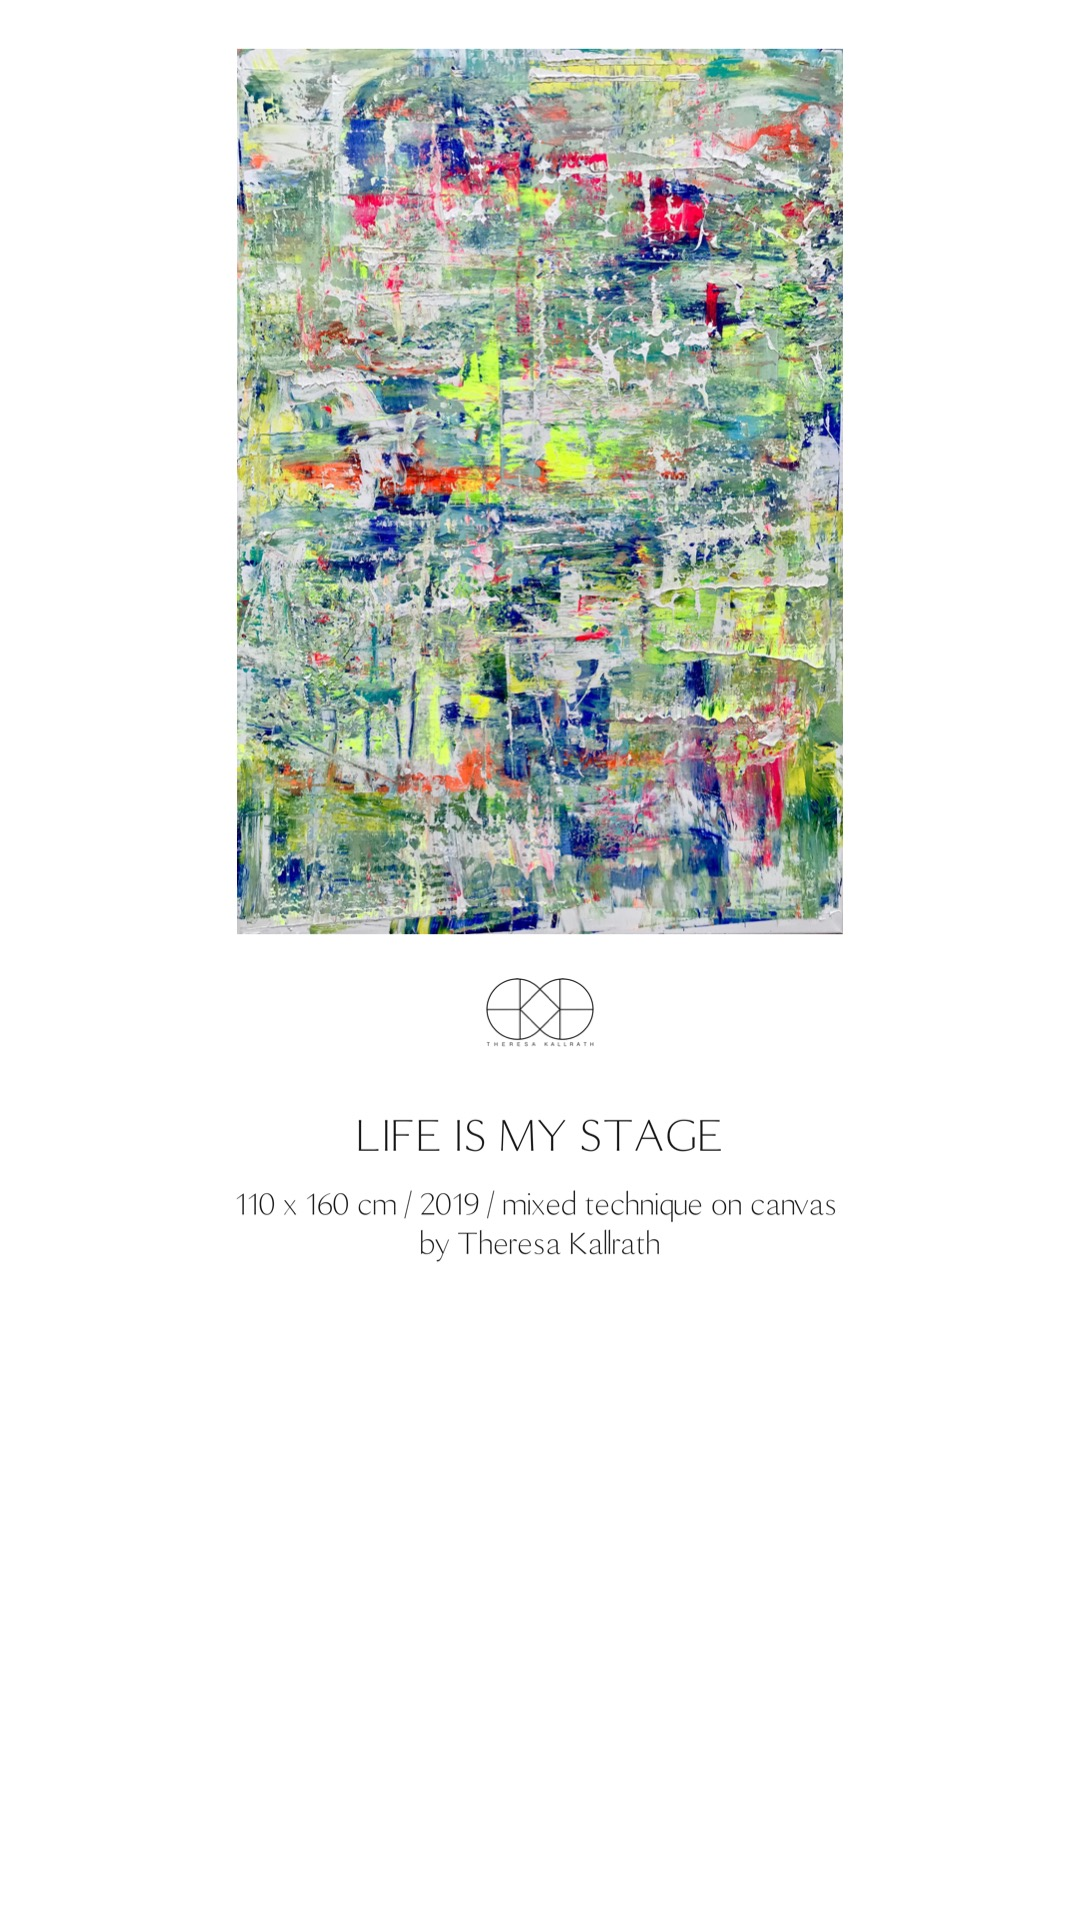 Theresa Kallrath_Life is my stage_2019